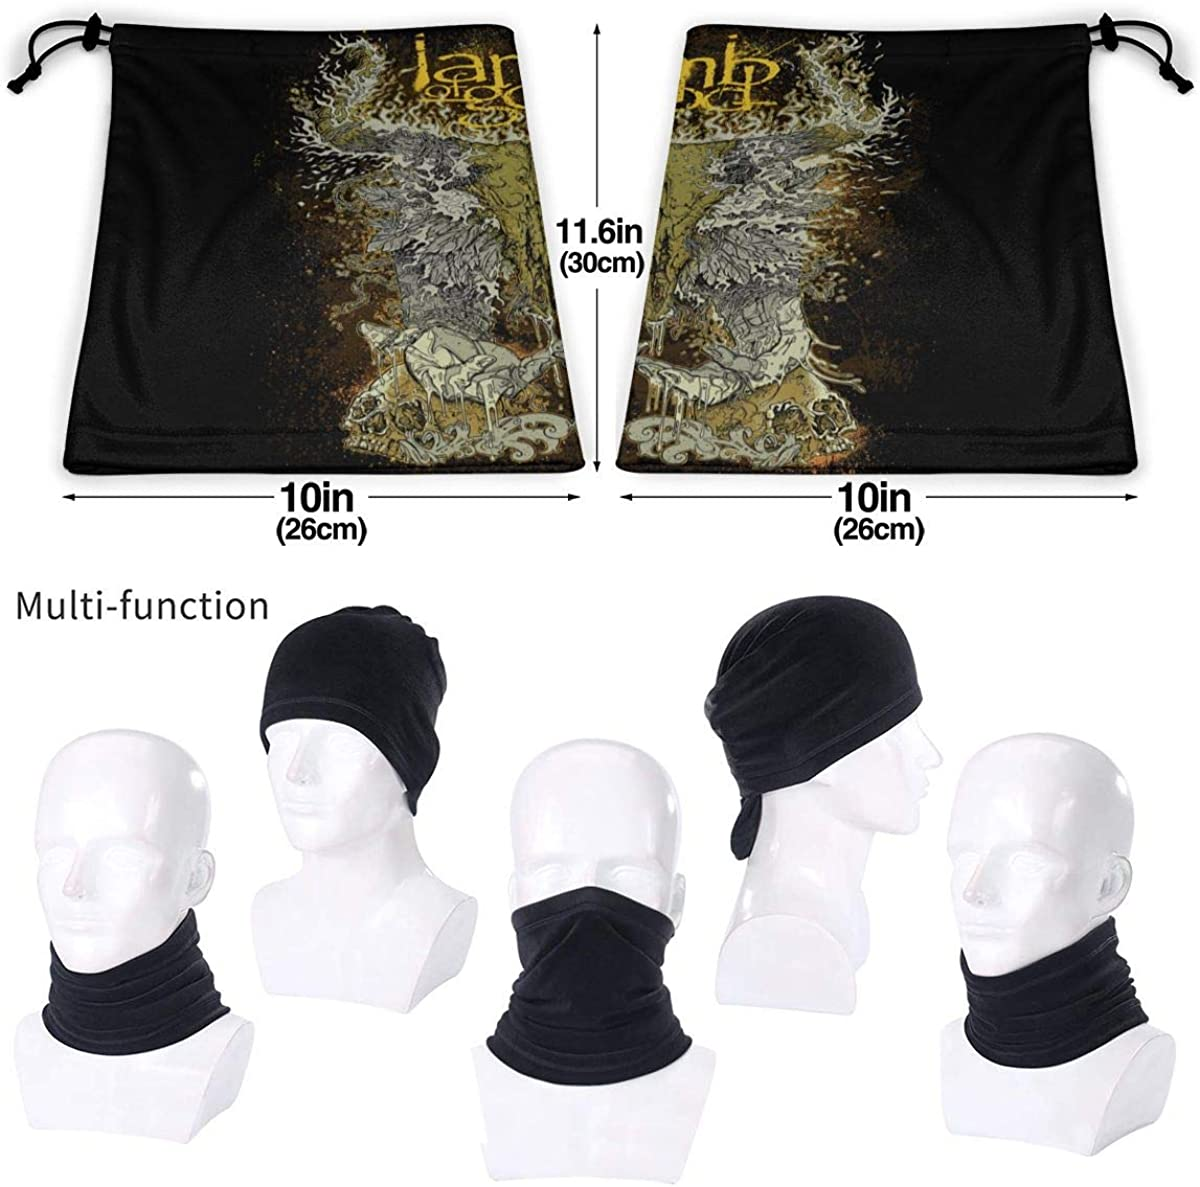 Lamb Of God Highly Elastic Warm Microfiber Neck Thermal Mask Scarf Unisex Windproof Suitable For Winter